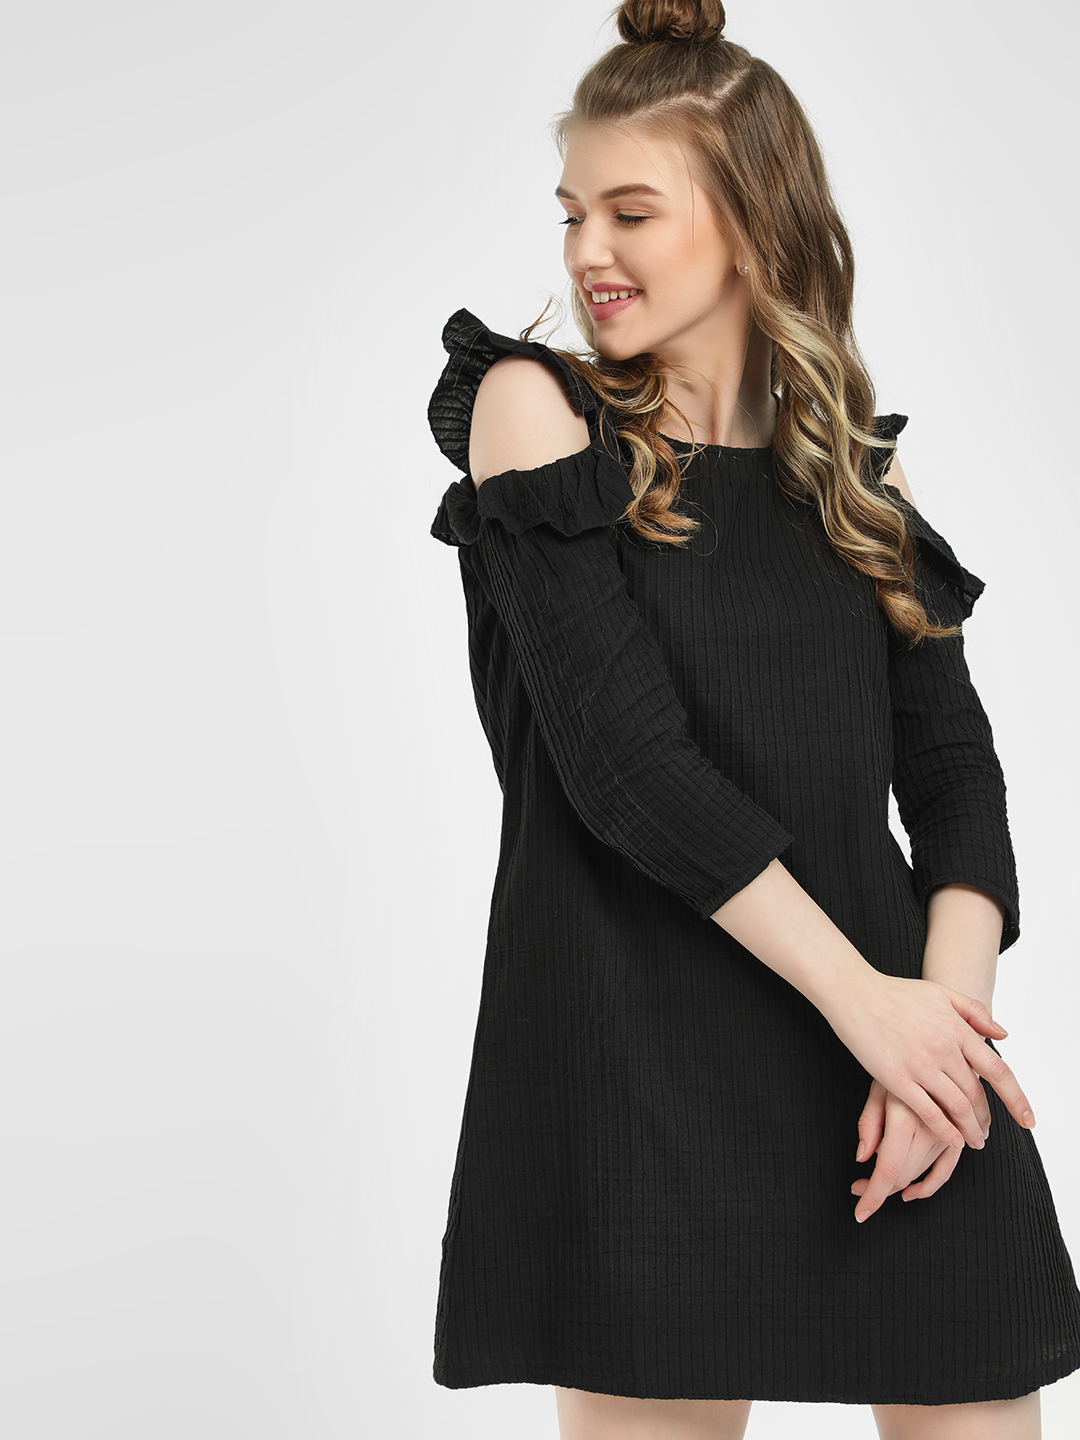 Sbuys Black Cold Shoulder Shift Dress 1